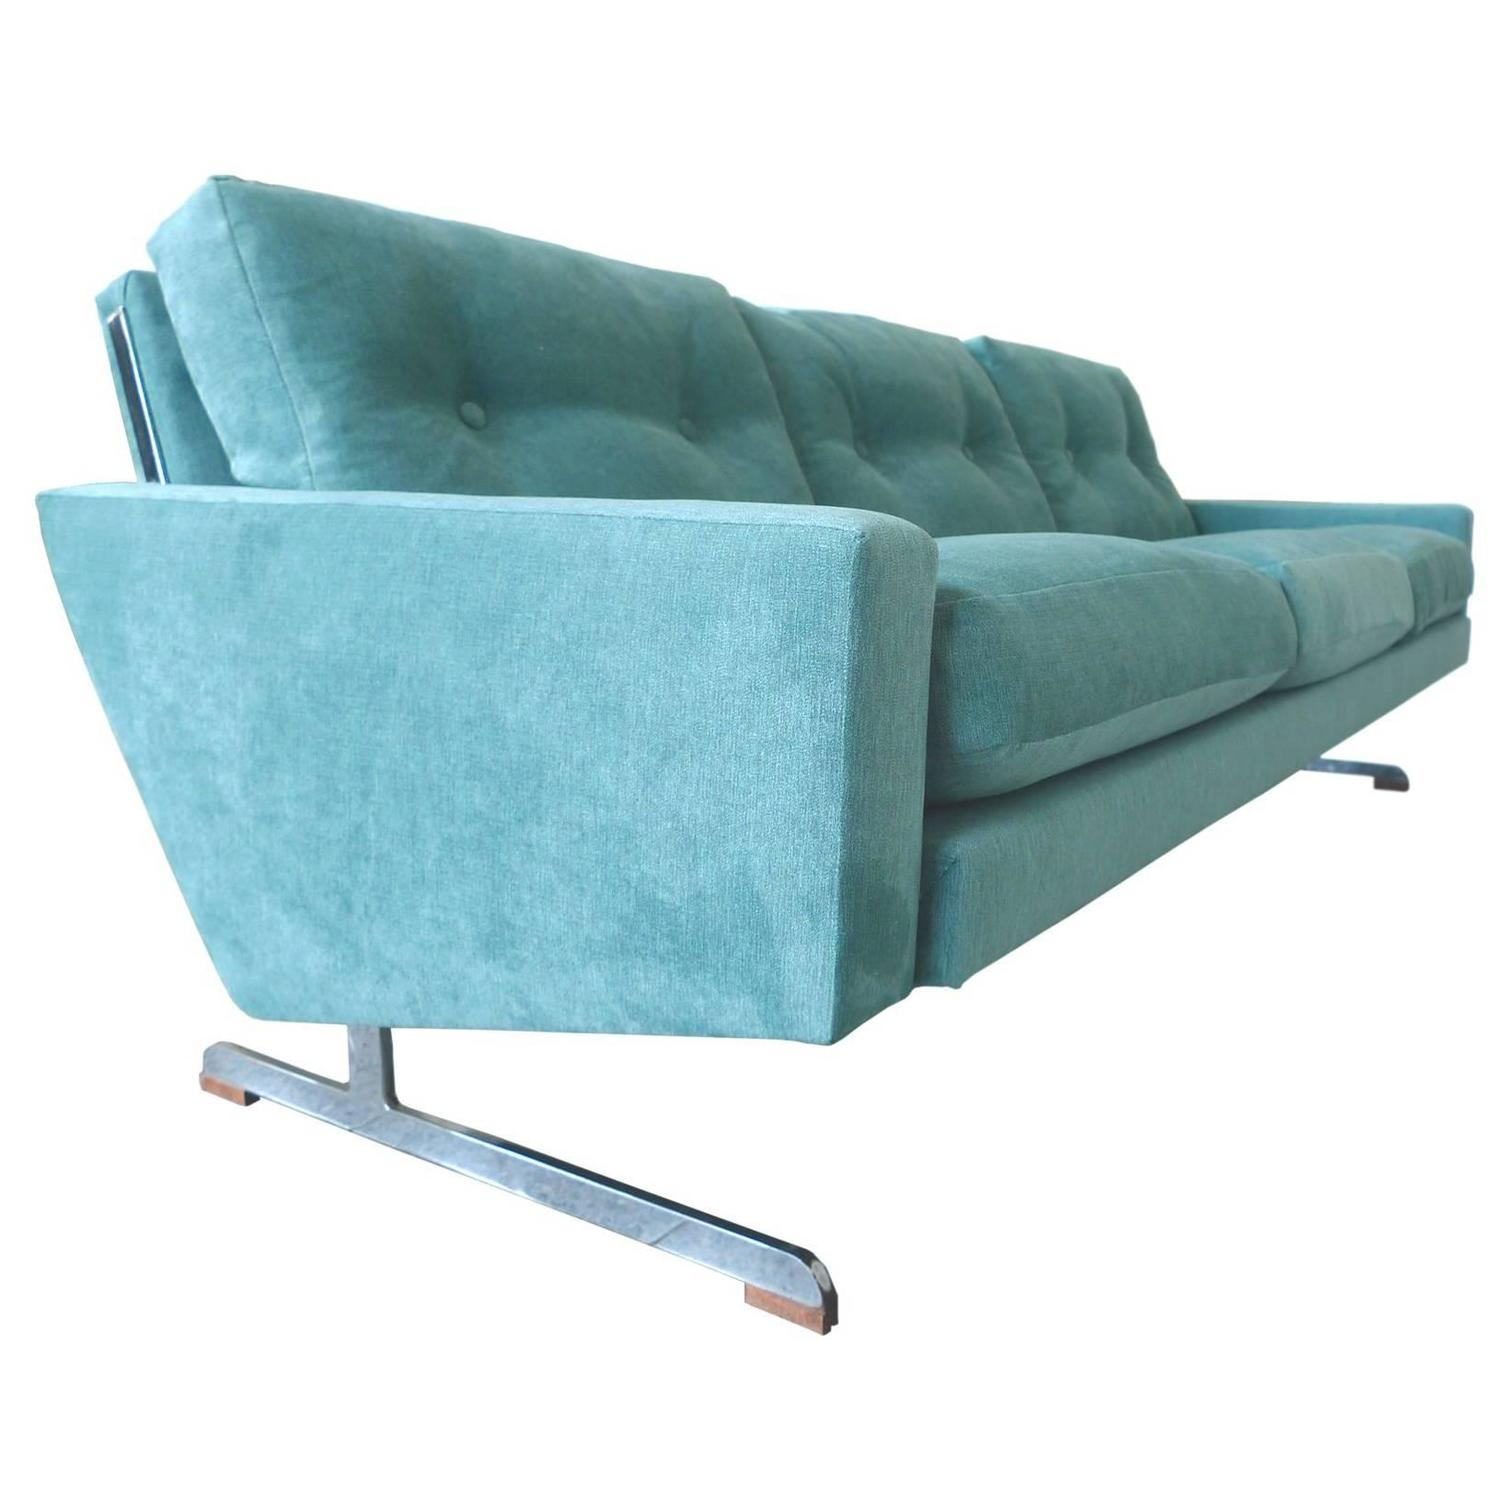 teal danish modern sofa by johannes andersen for sale at stdibs -